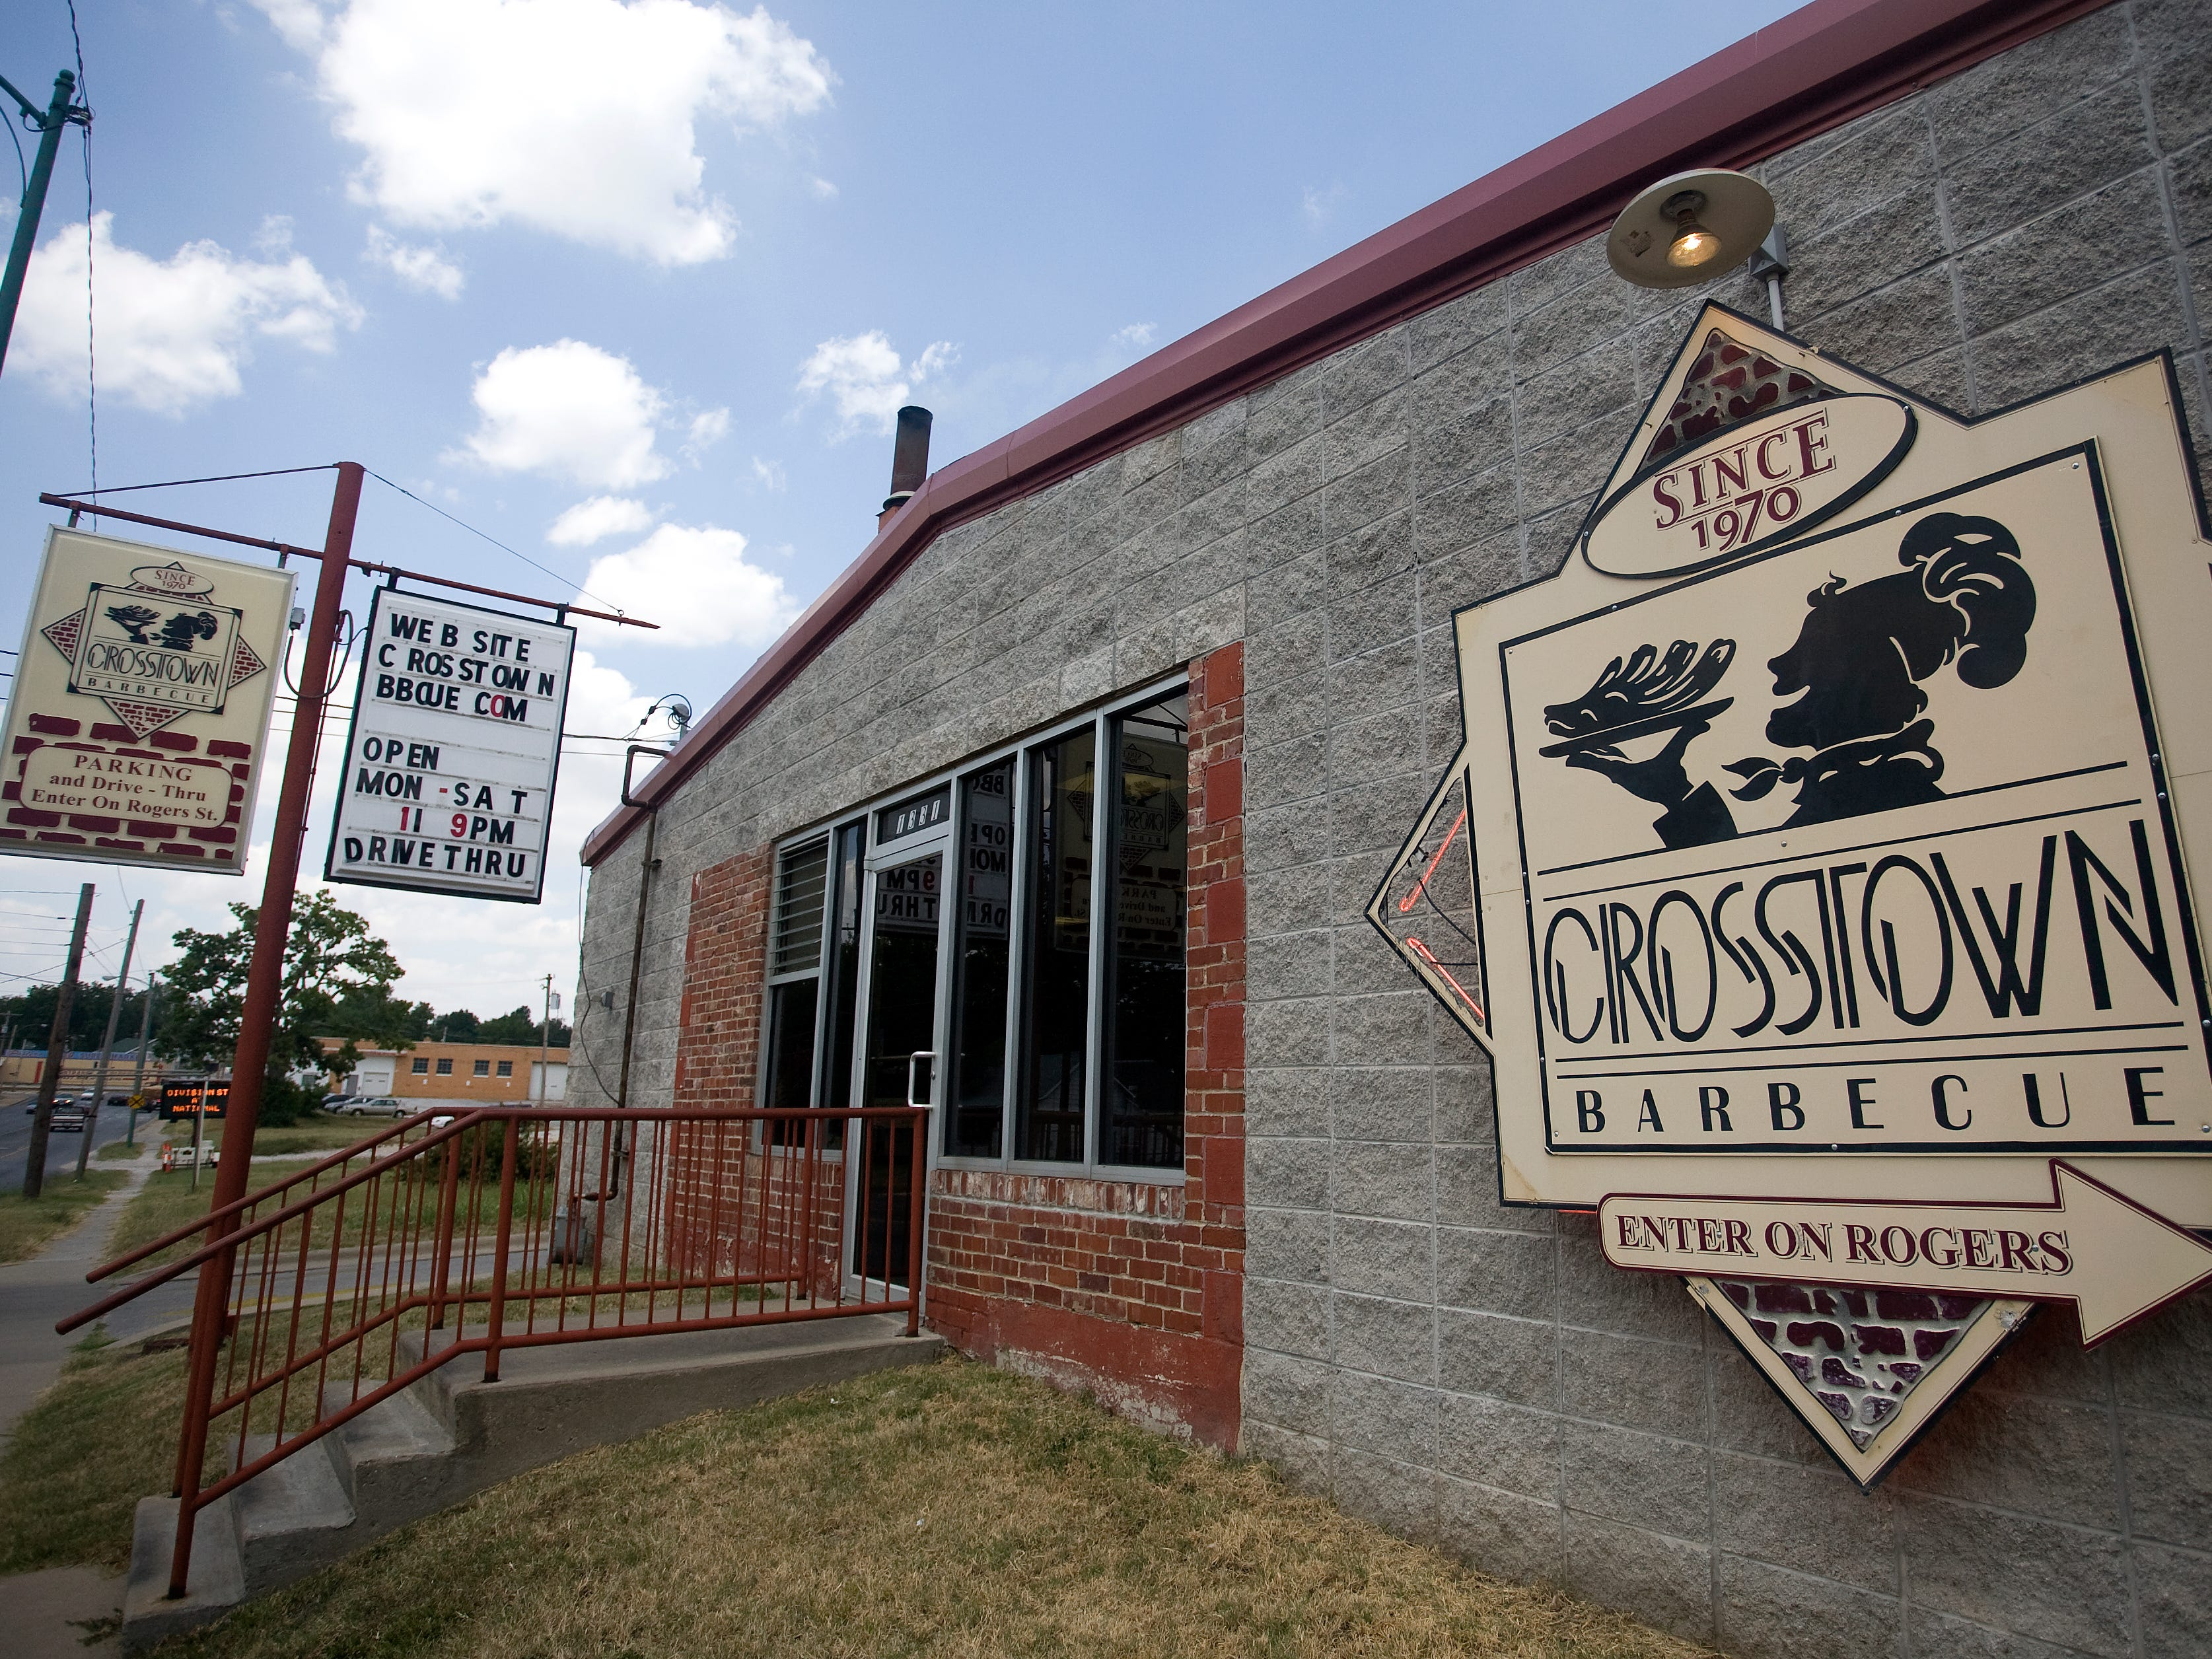 Crosstown Barbecue was opened in 1970 by Jesse Williams at the same location it is in today. The current building that houses the restaurant was built in 2002, and is owned by Steve Williams, the son of the founder. The restaurant still serves the same Kansas City style barbecue that put them on the map.